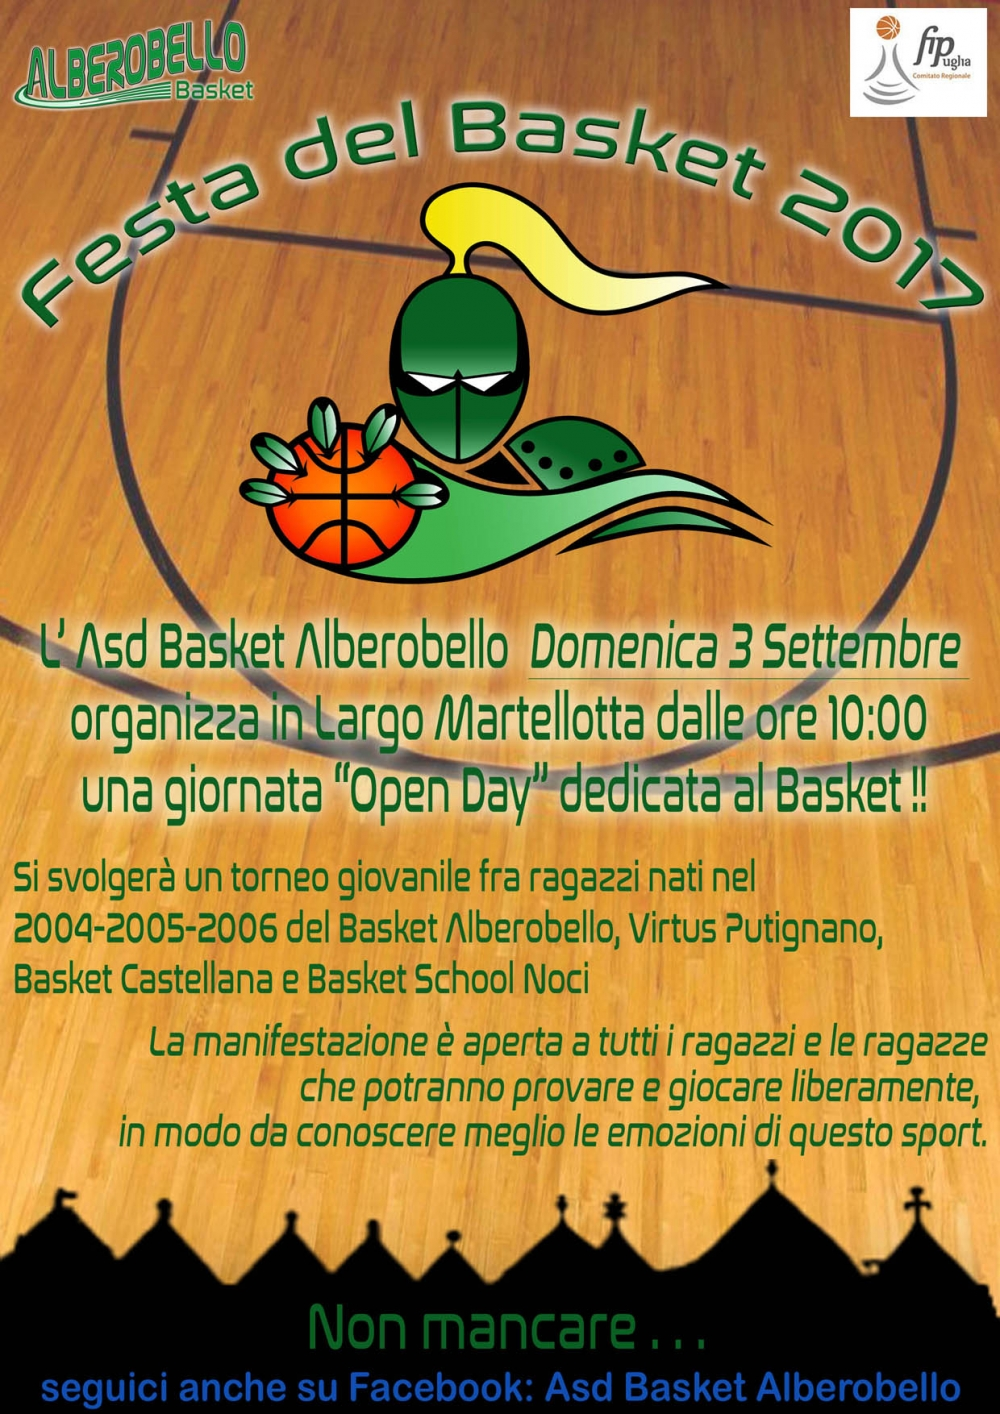 festa del basket copia